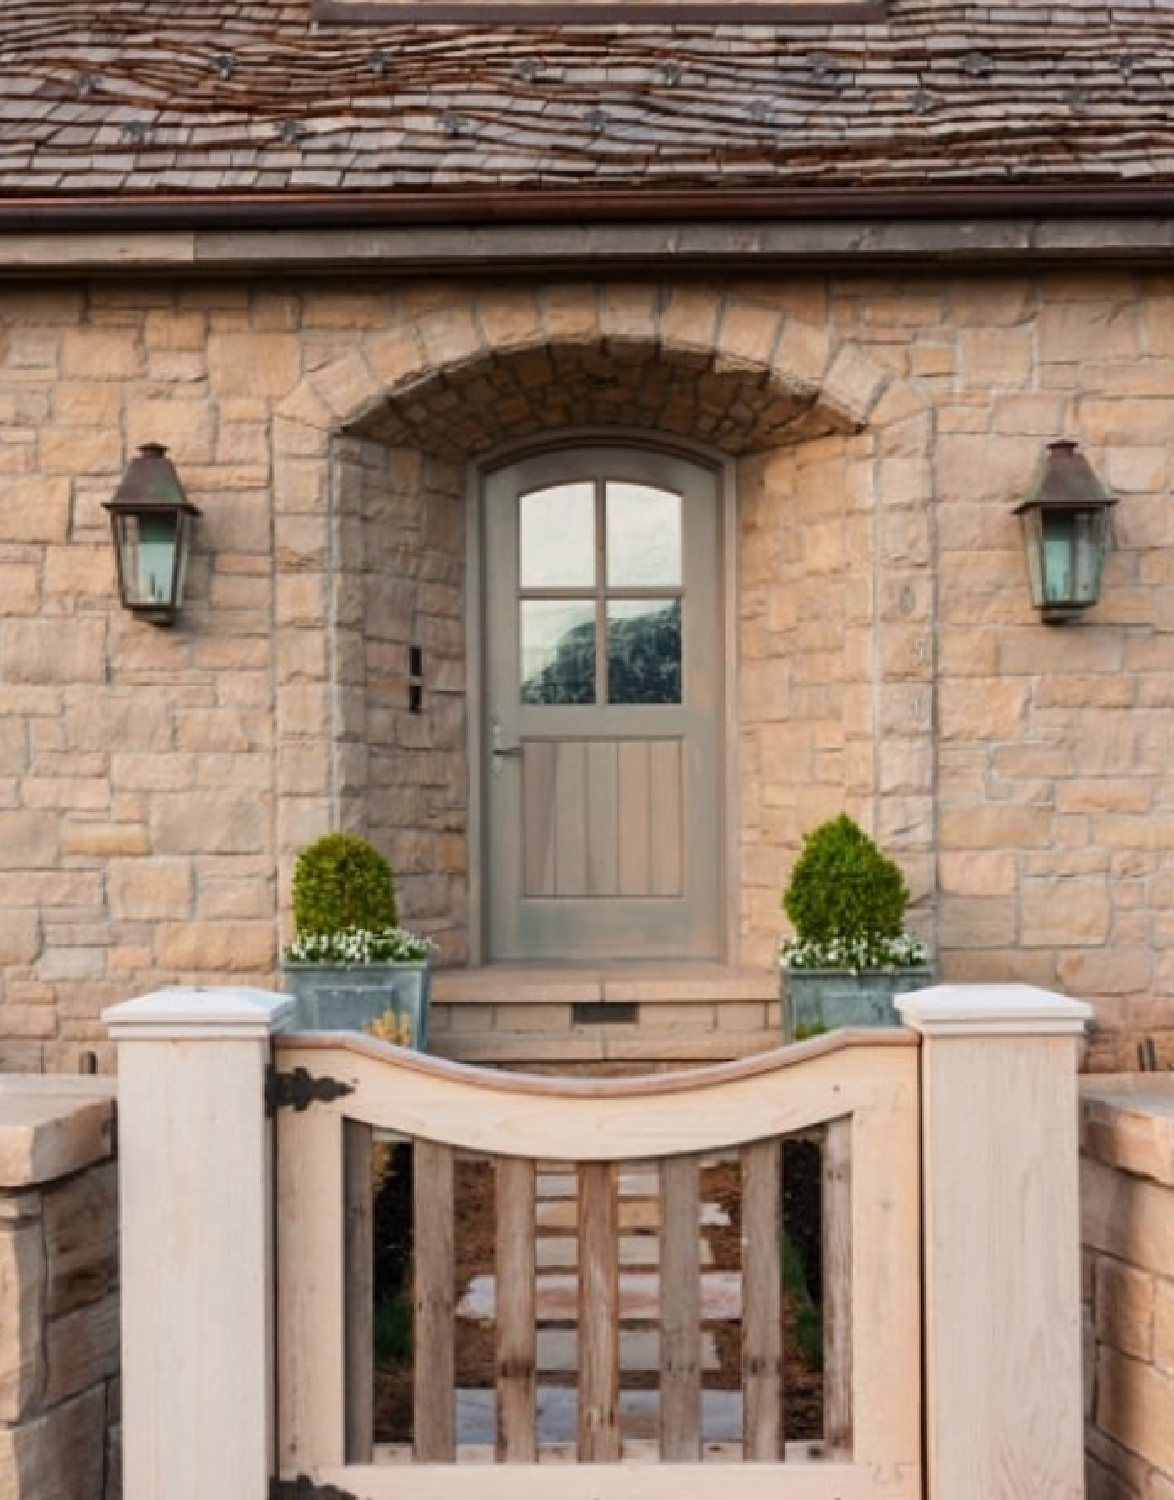 French country stone cottage arched entrance - design by Desiree Ashworth.